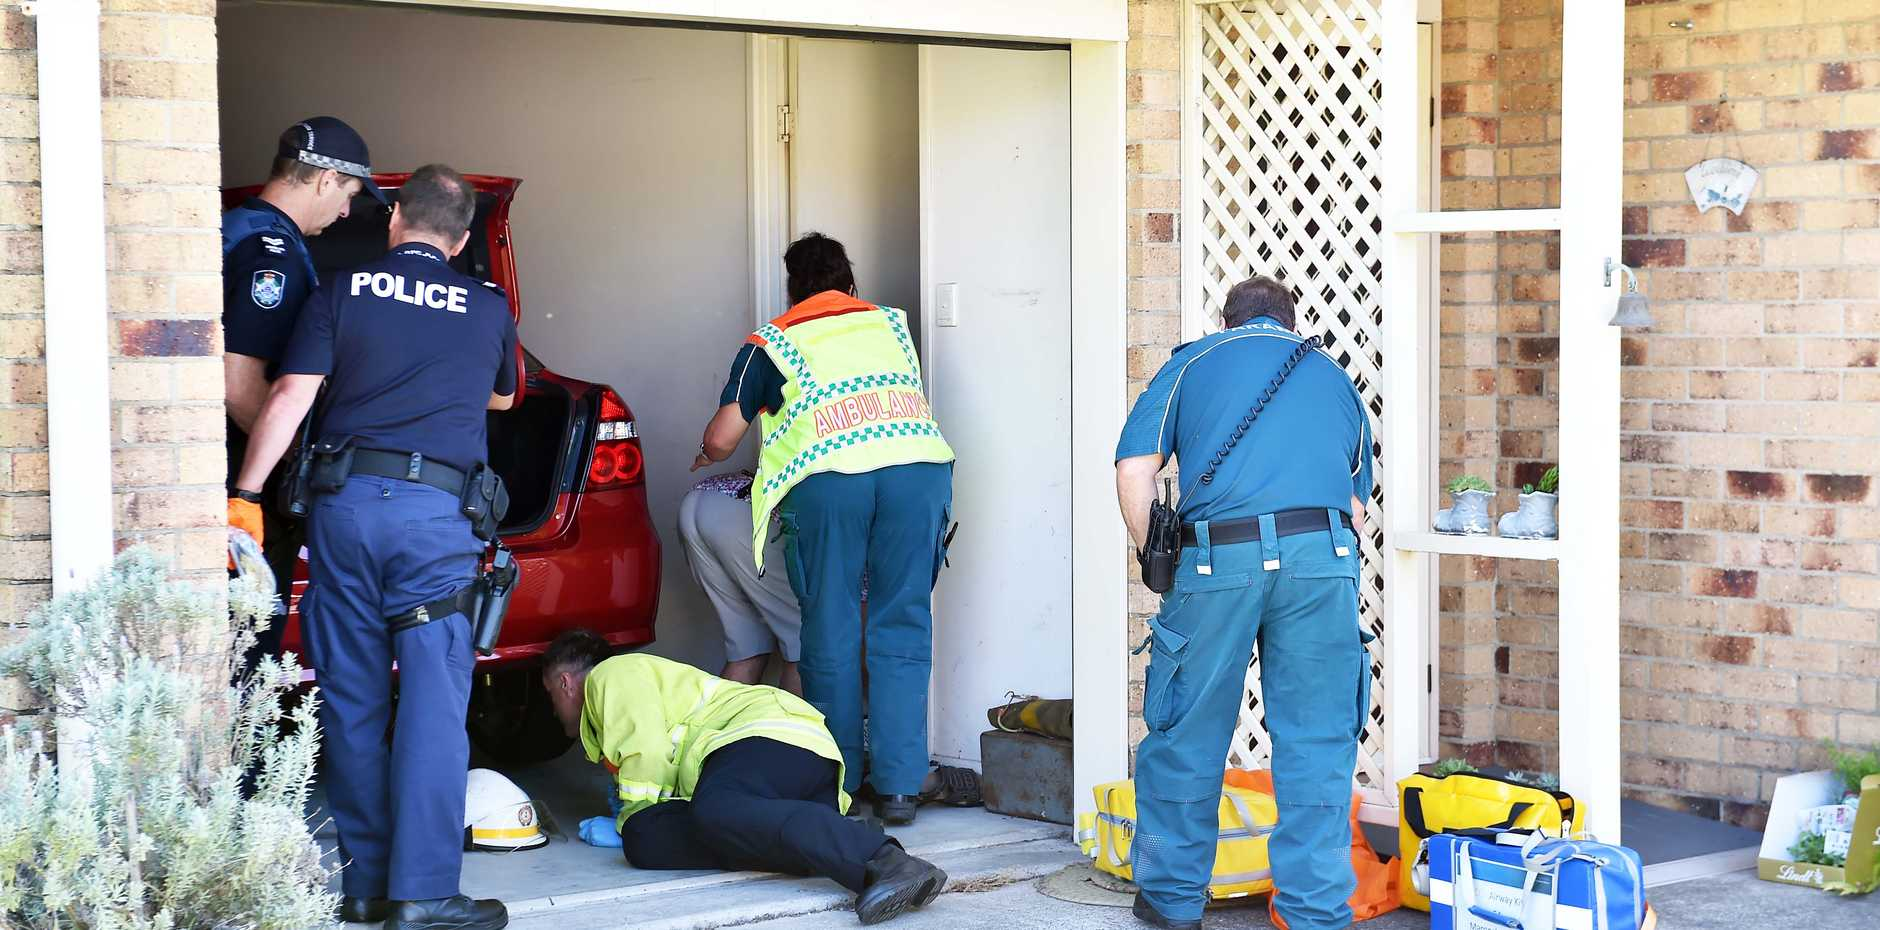 A man in his 90s has been seriously injured in a crash at Buddina, where he was trapped underneath his vehicle for some time.